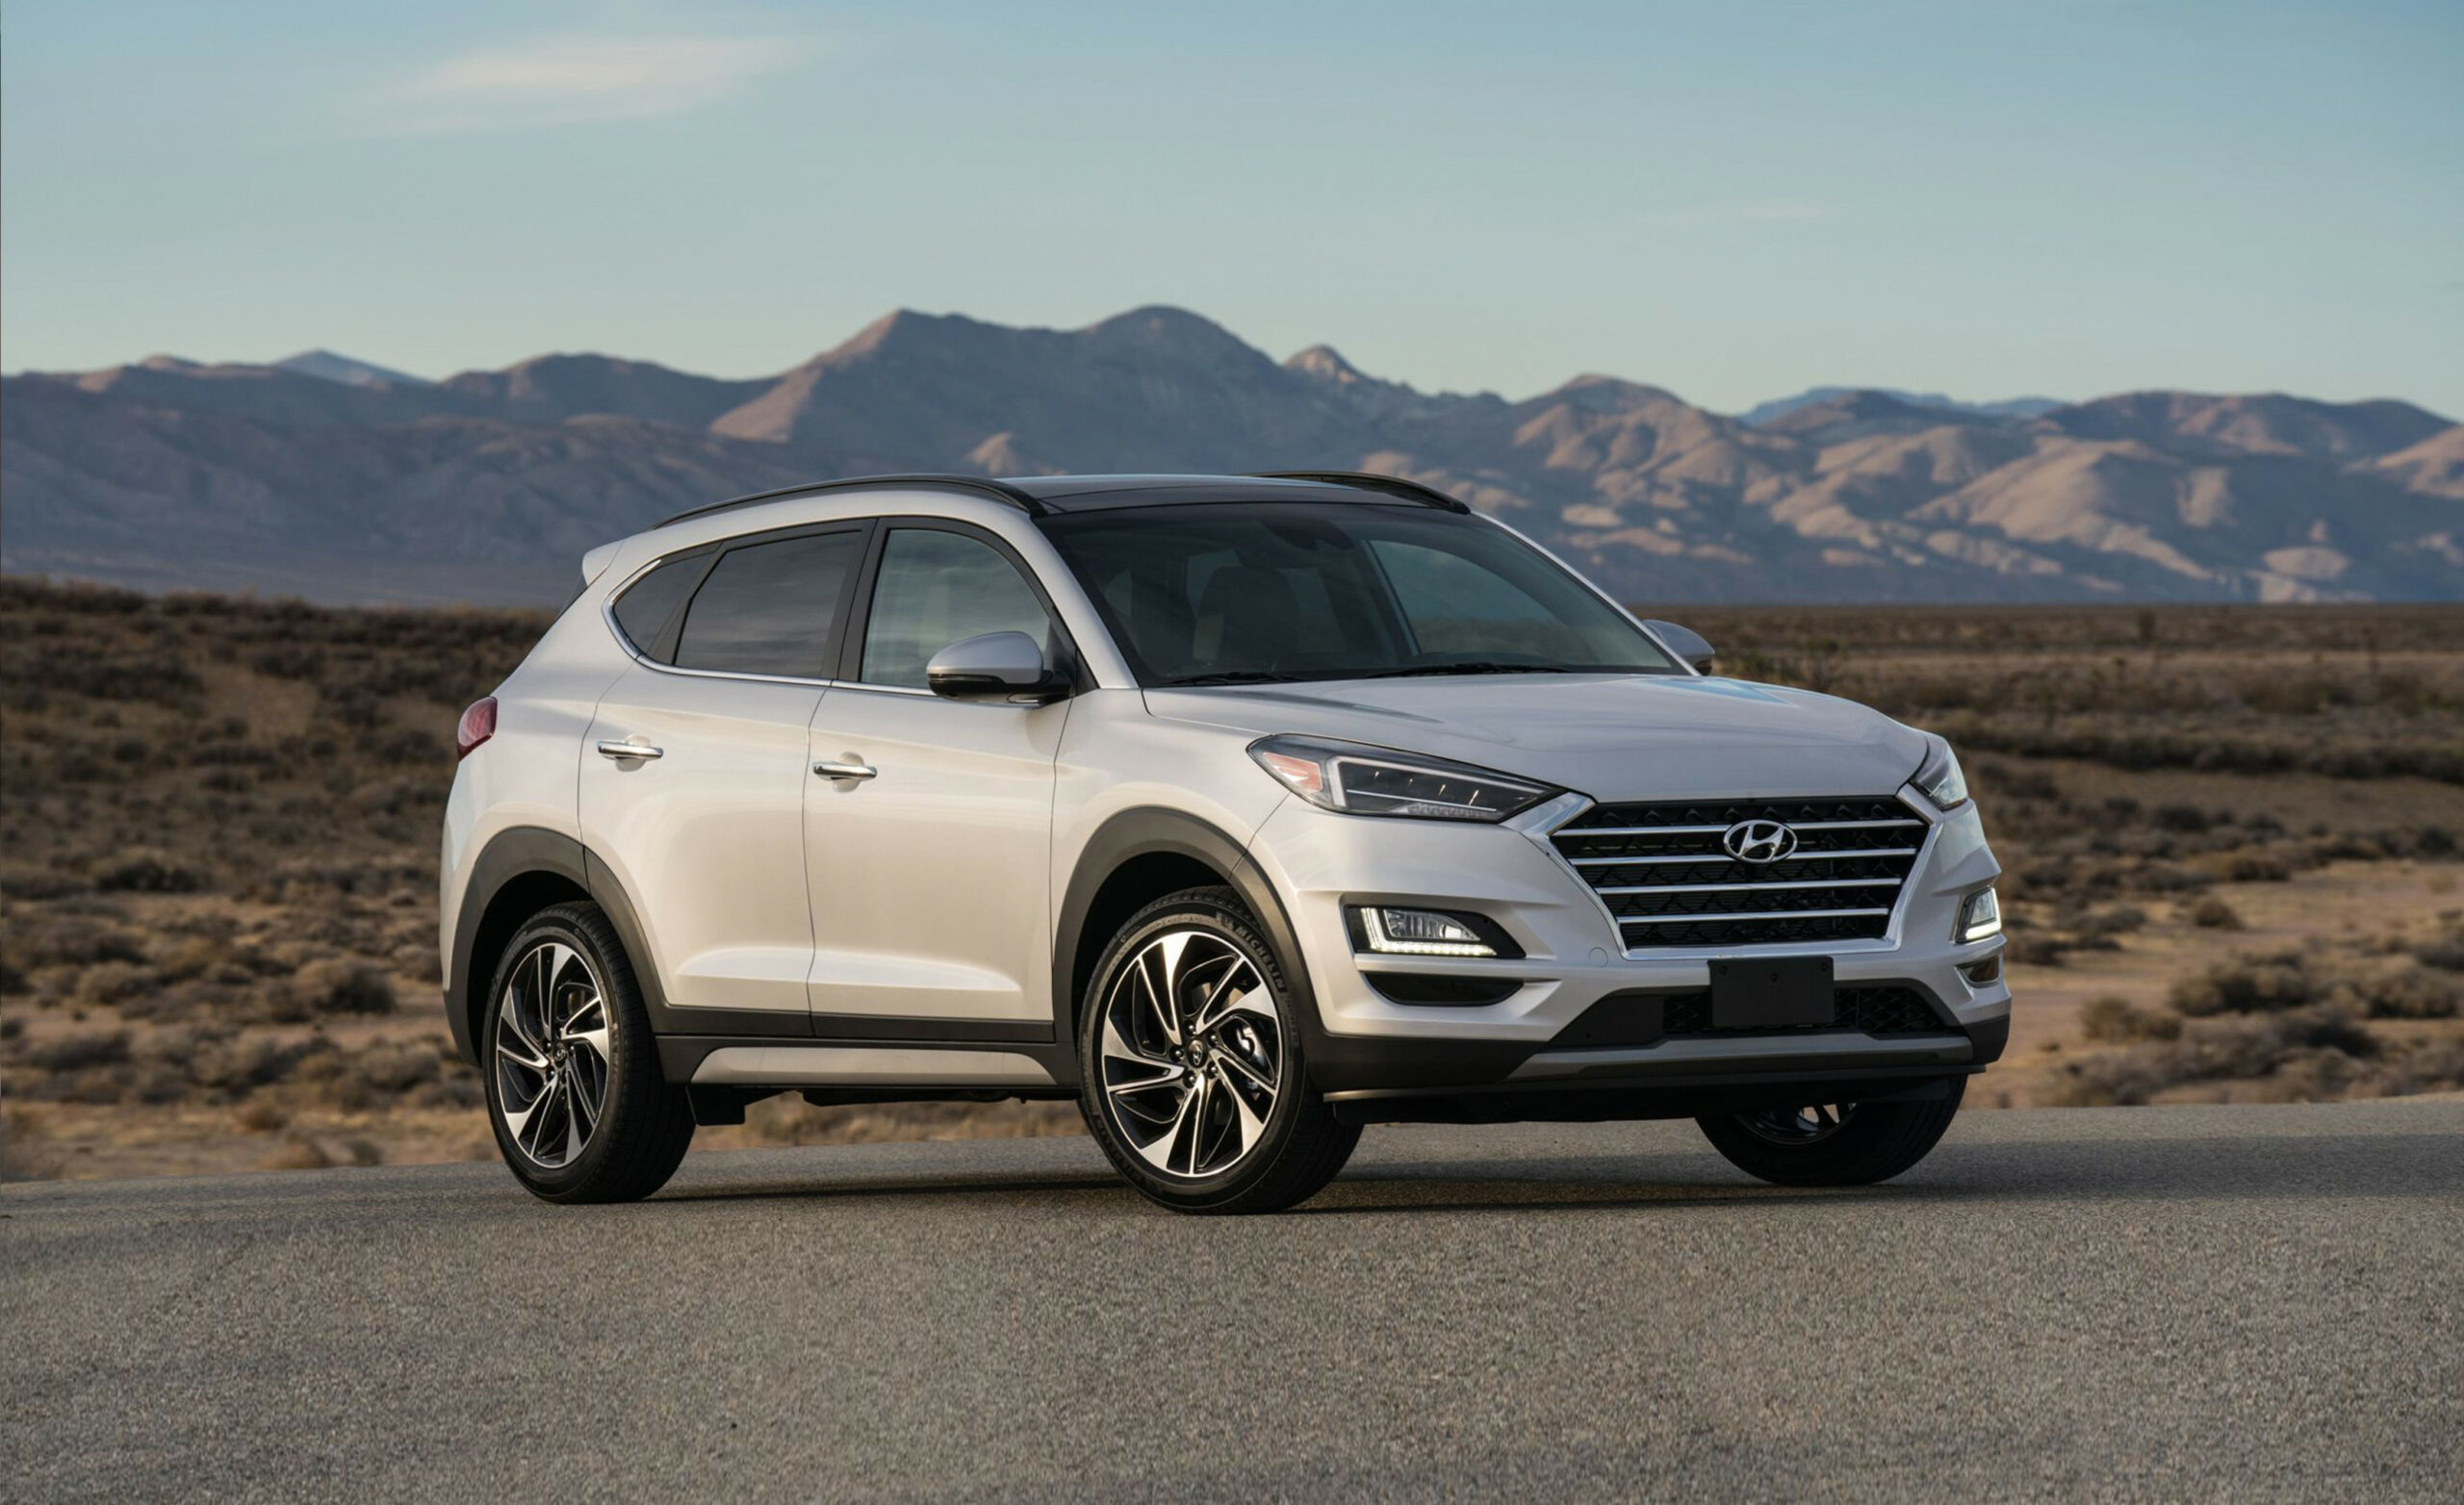 9 Hyundai Tucson Review, Pricing, and Specs